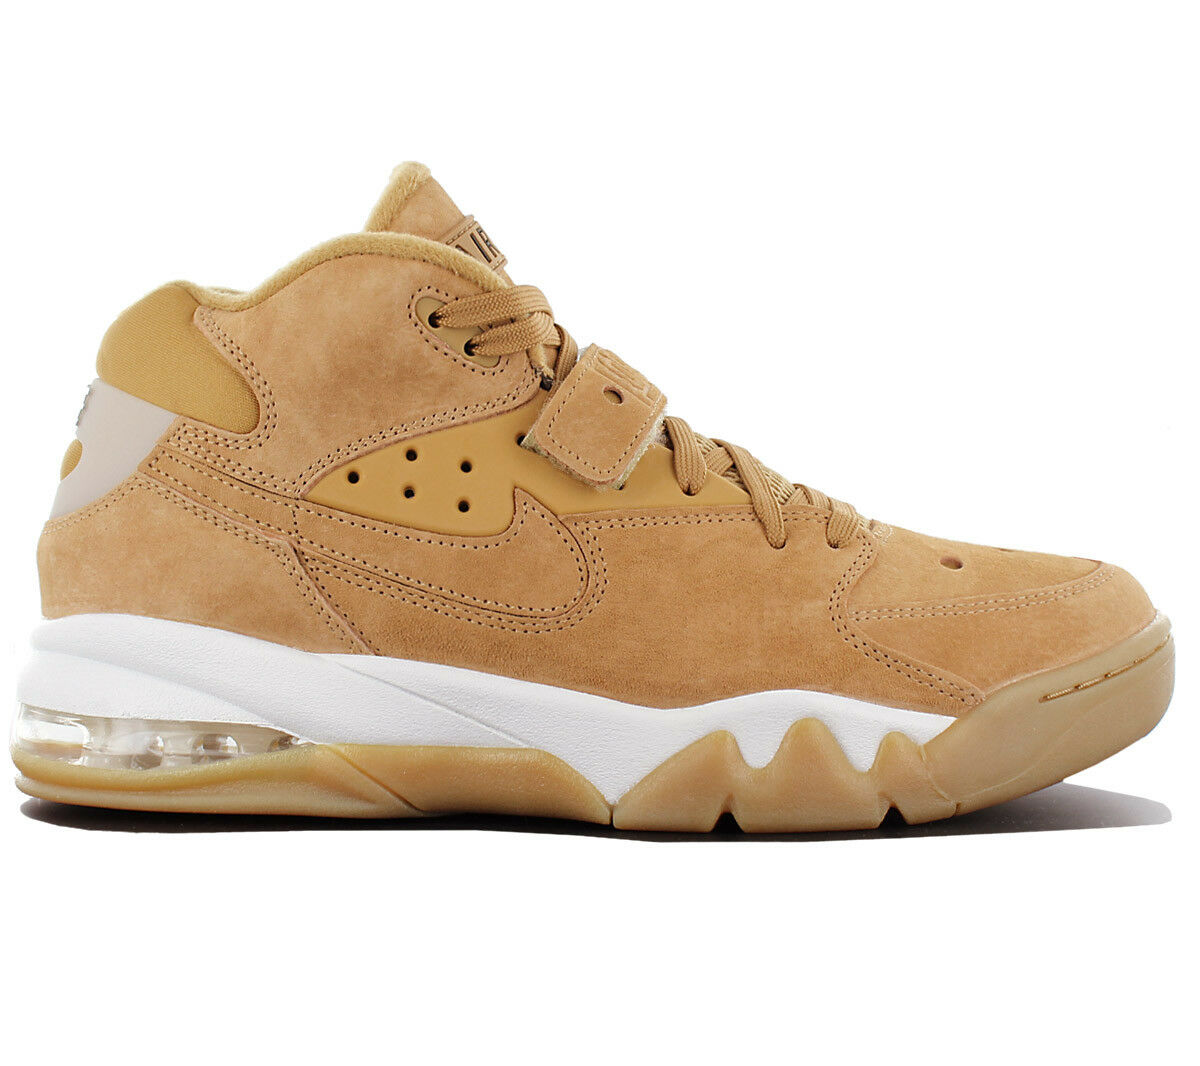 Nike Air Force Max Prm Premium Mens Sneakers Leather Leather Leather shoes brown 1 315065 200 08459d